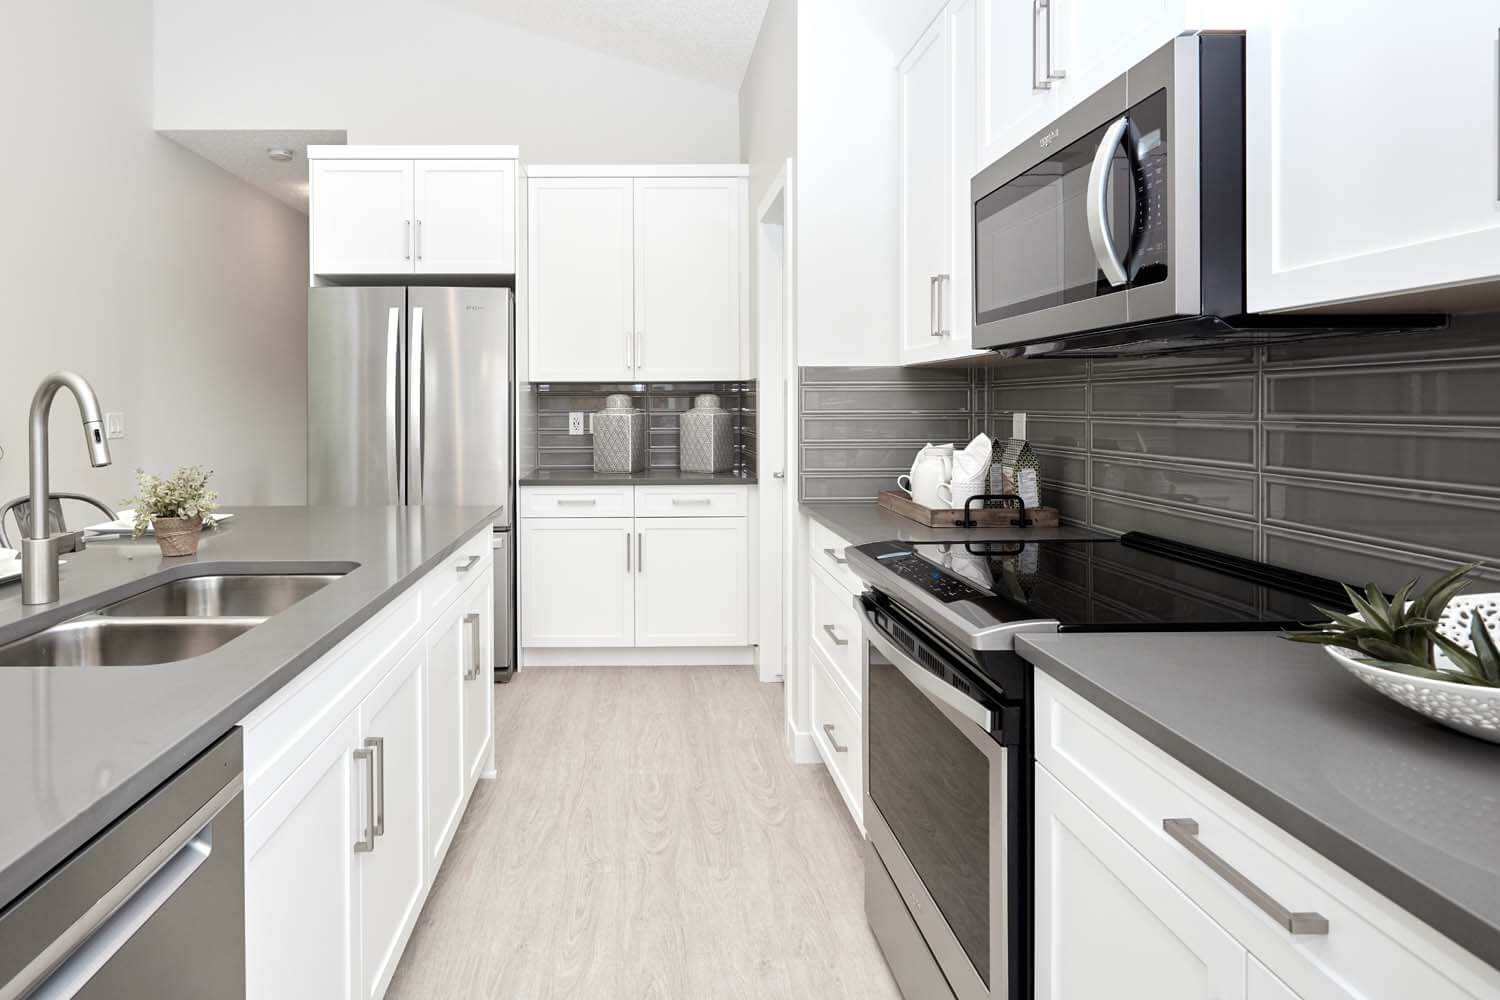 New Calgary  Model Home Hudson in Walden, located at 119 Walgrove Green SE Built By Cardel Homes Calgary